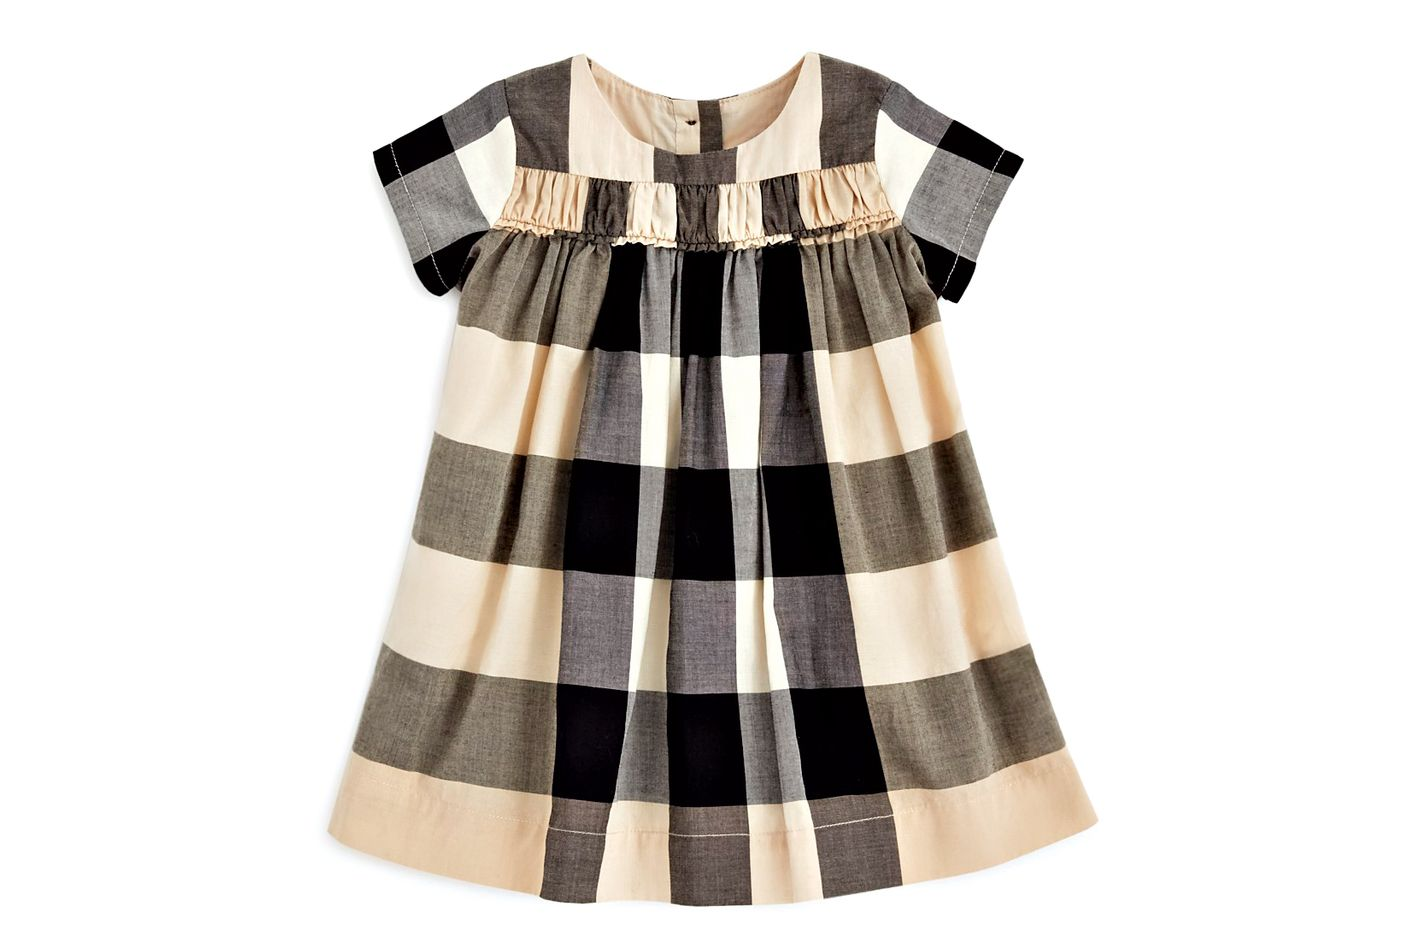 Burberry Girls' Ariadne Check Dress